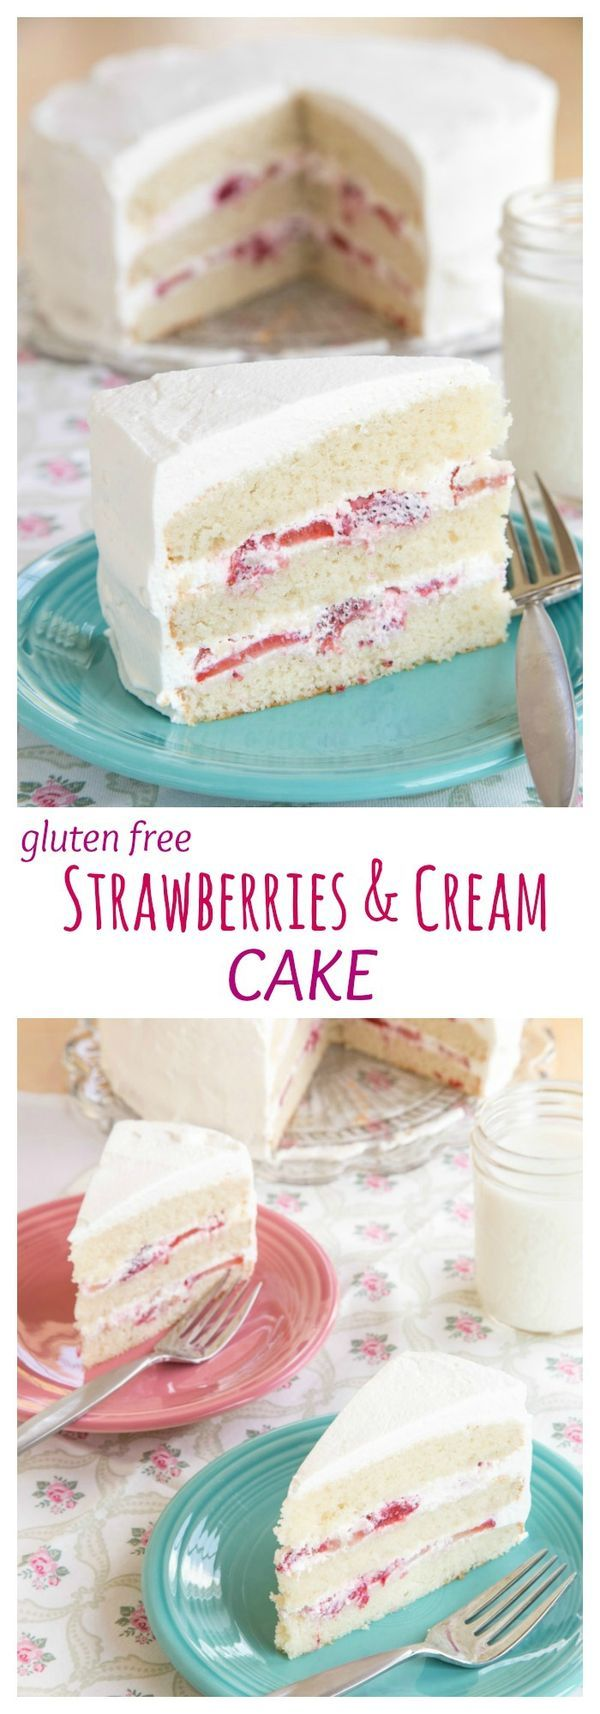 Gluten Free Strawberries and Cream Cake - a family favorite dessert recipe! Layers of white cake, sweet berries, and homemade whipped cream. | cupcakesandkalechips.com